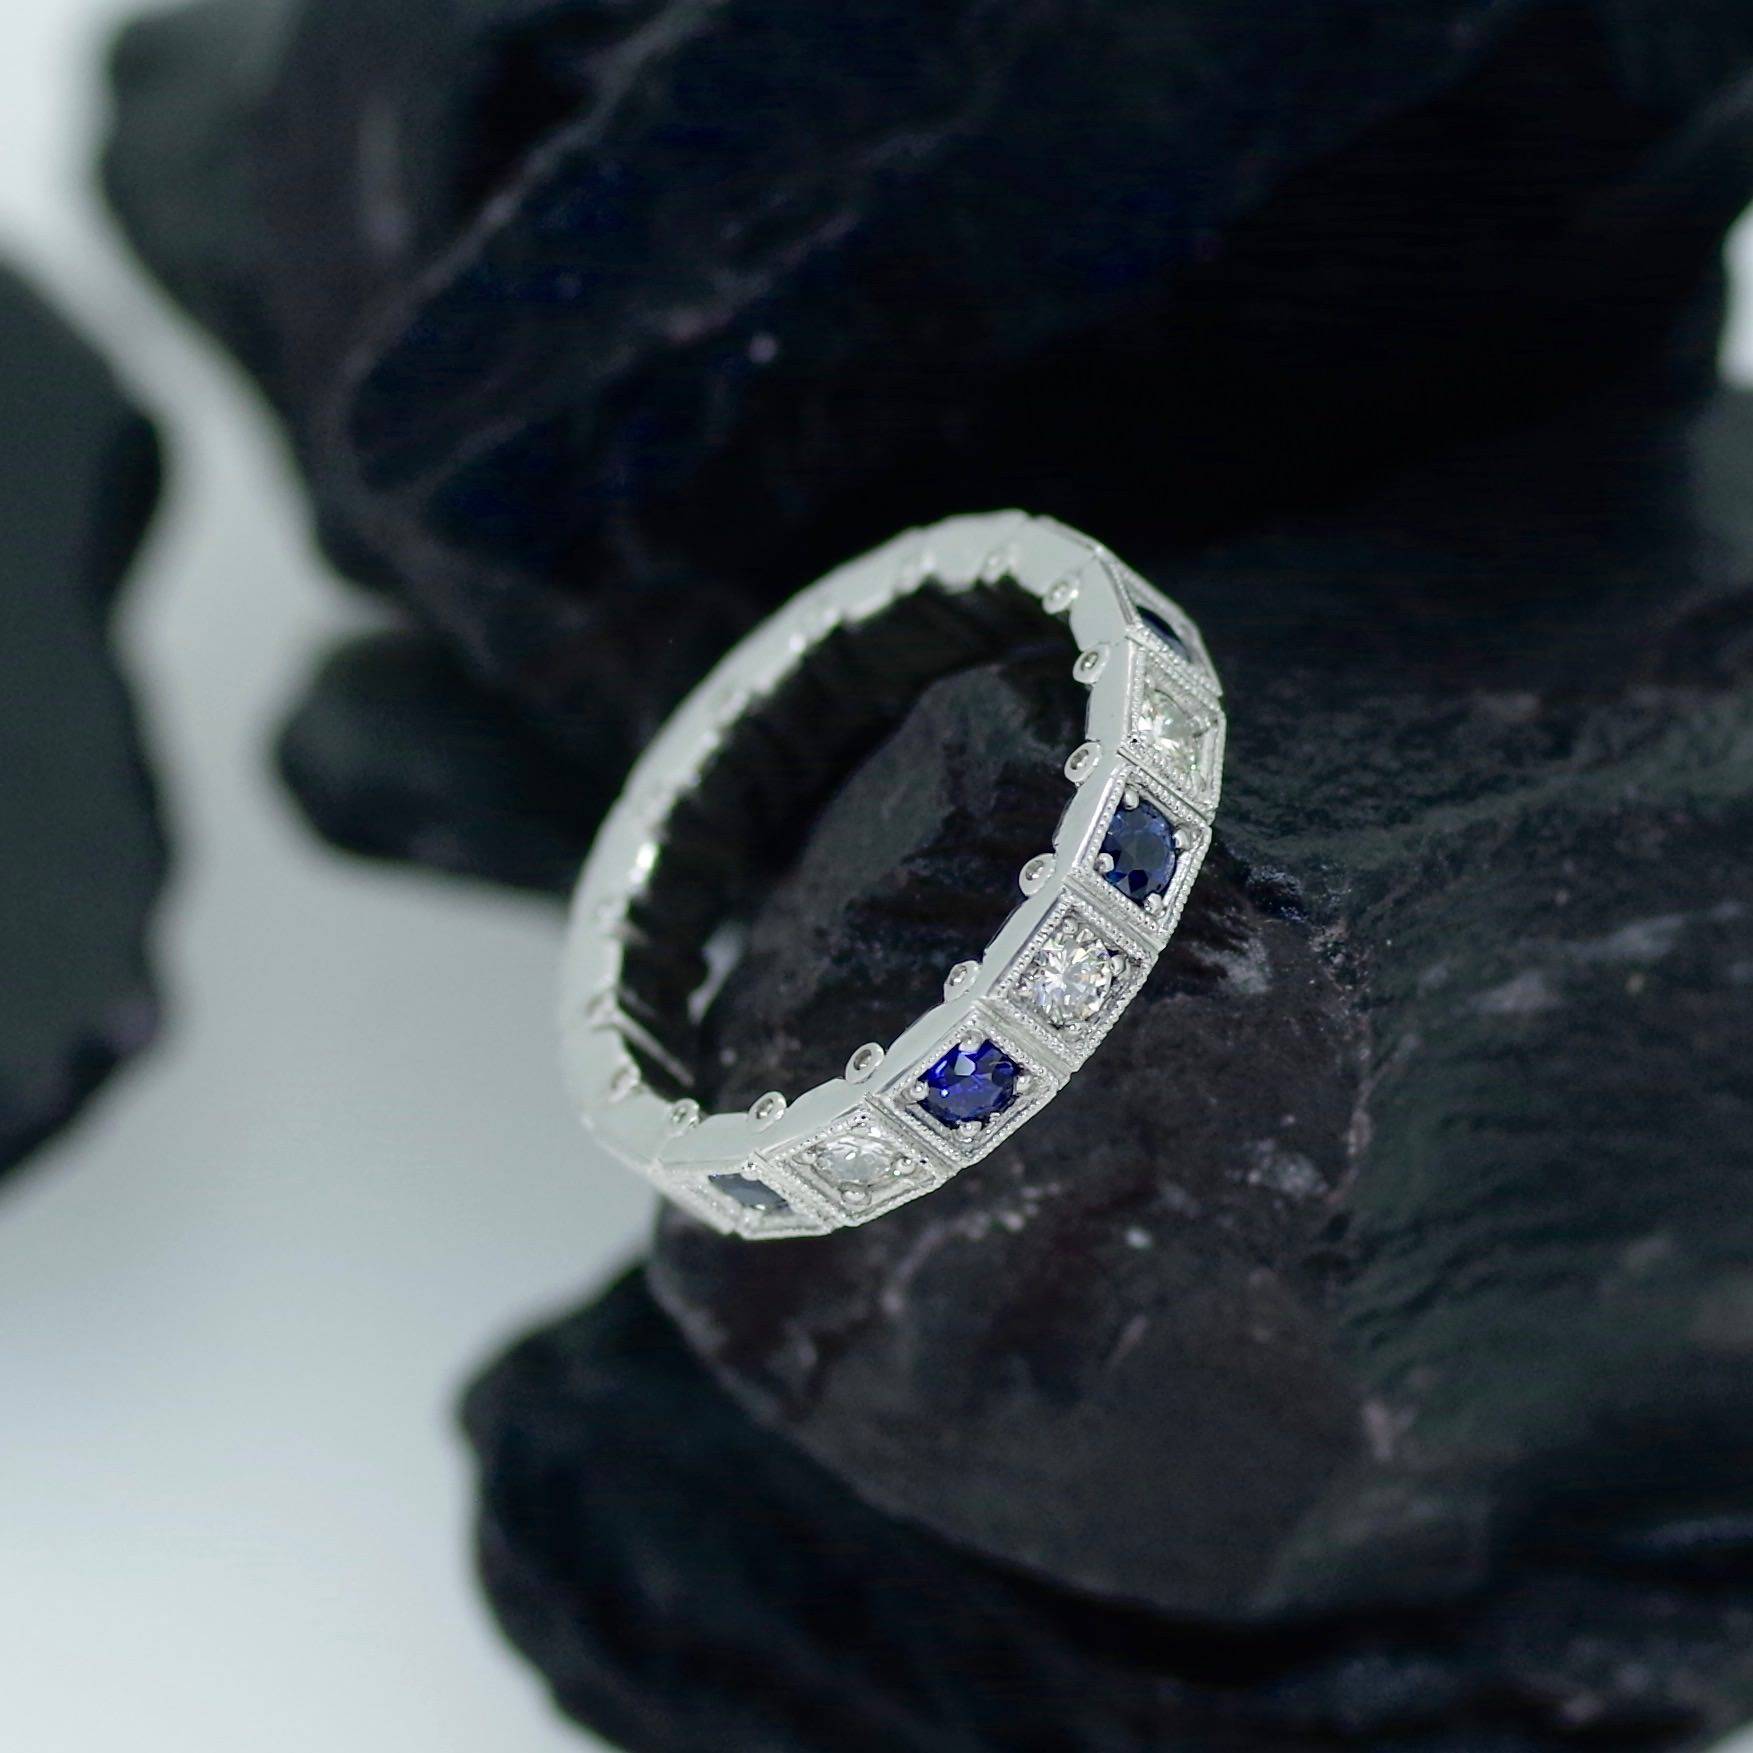 Platinum ring with Diamonds & Sapphires with millgrain detailing (ref ET010)